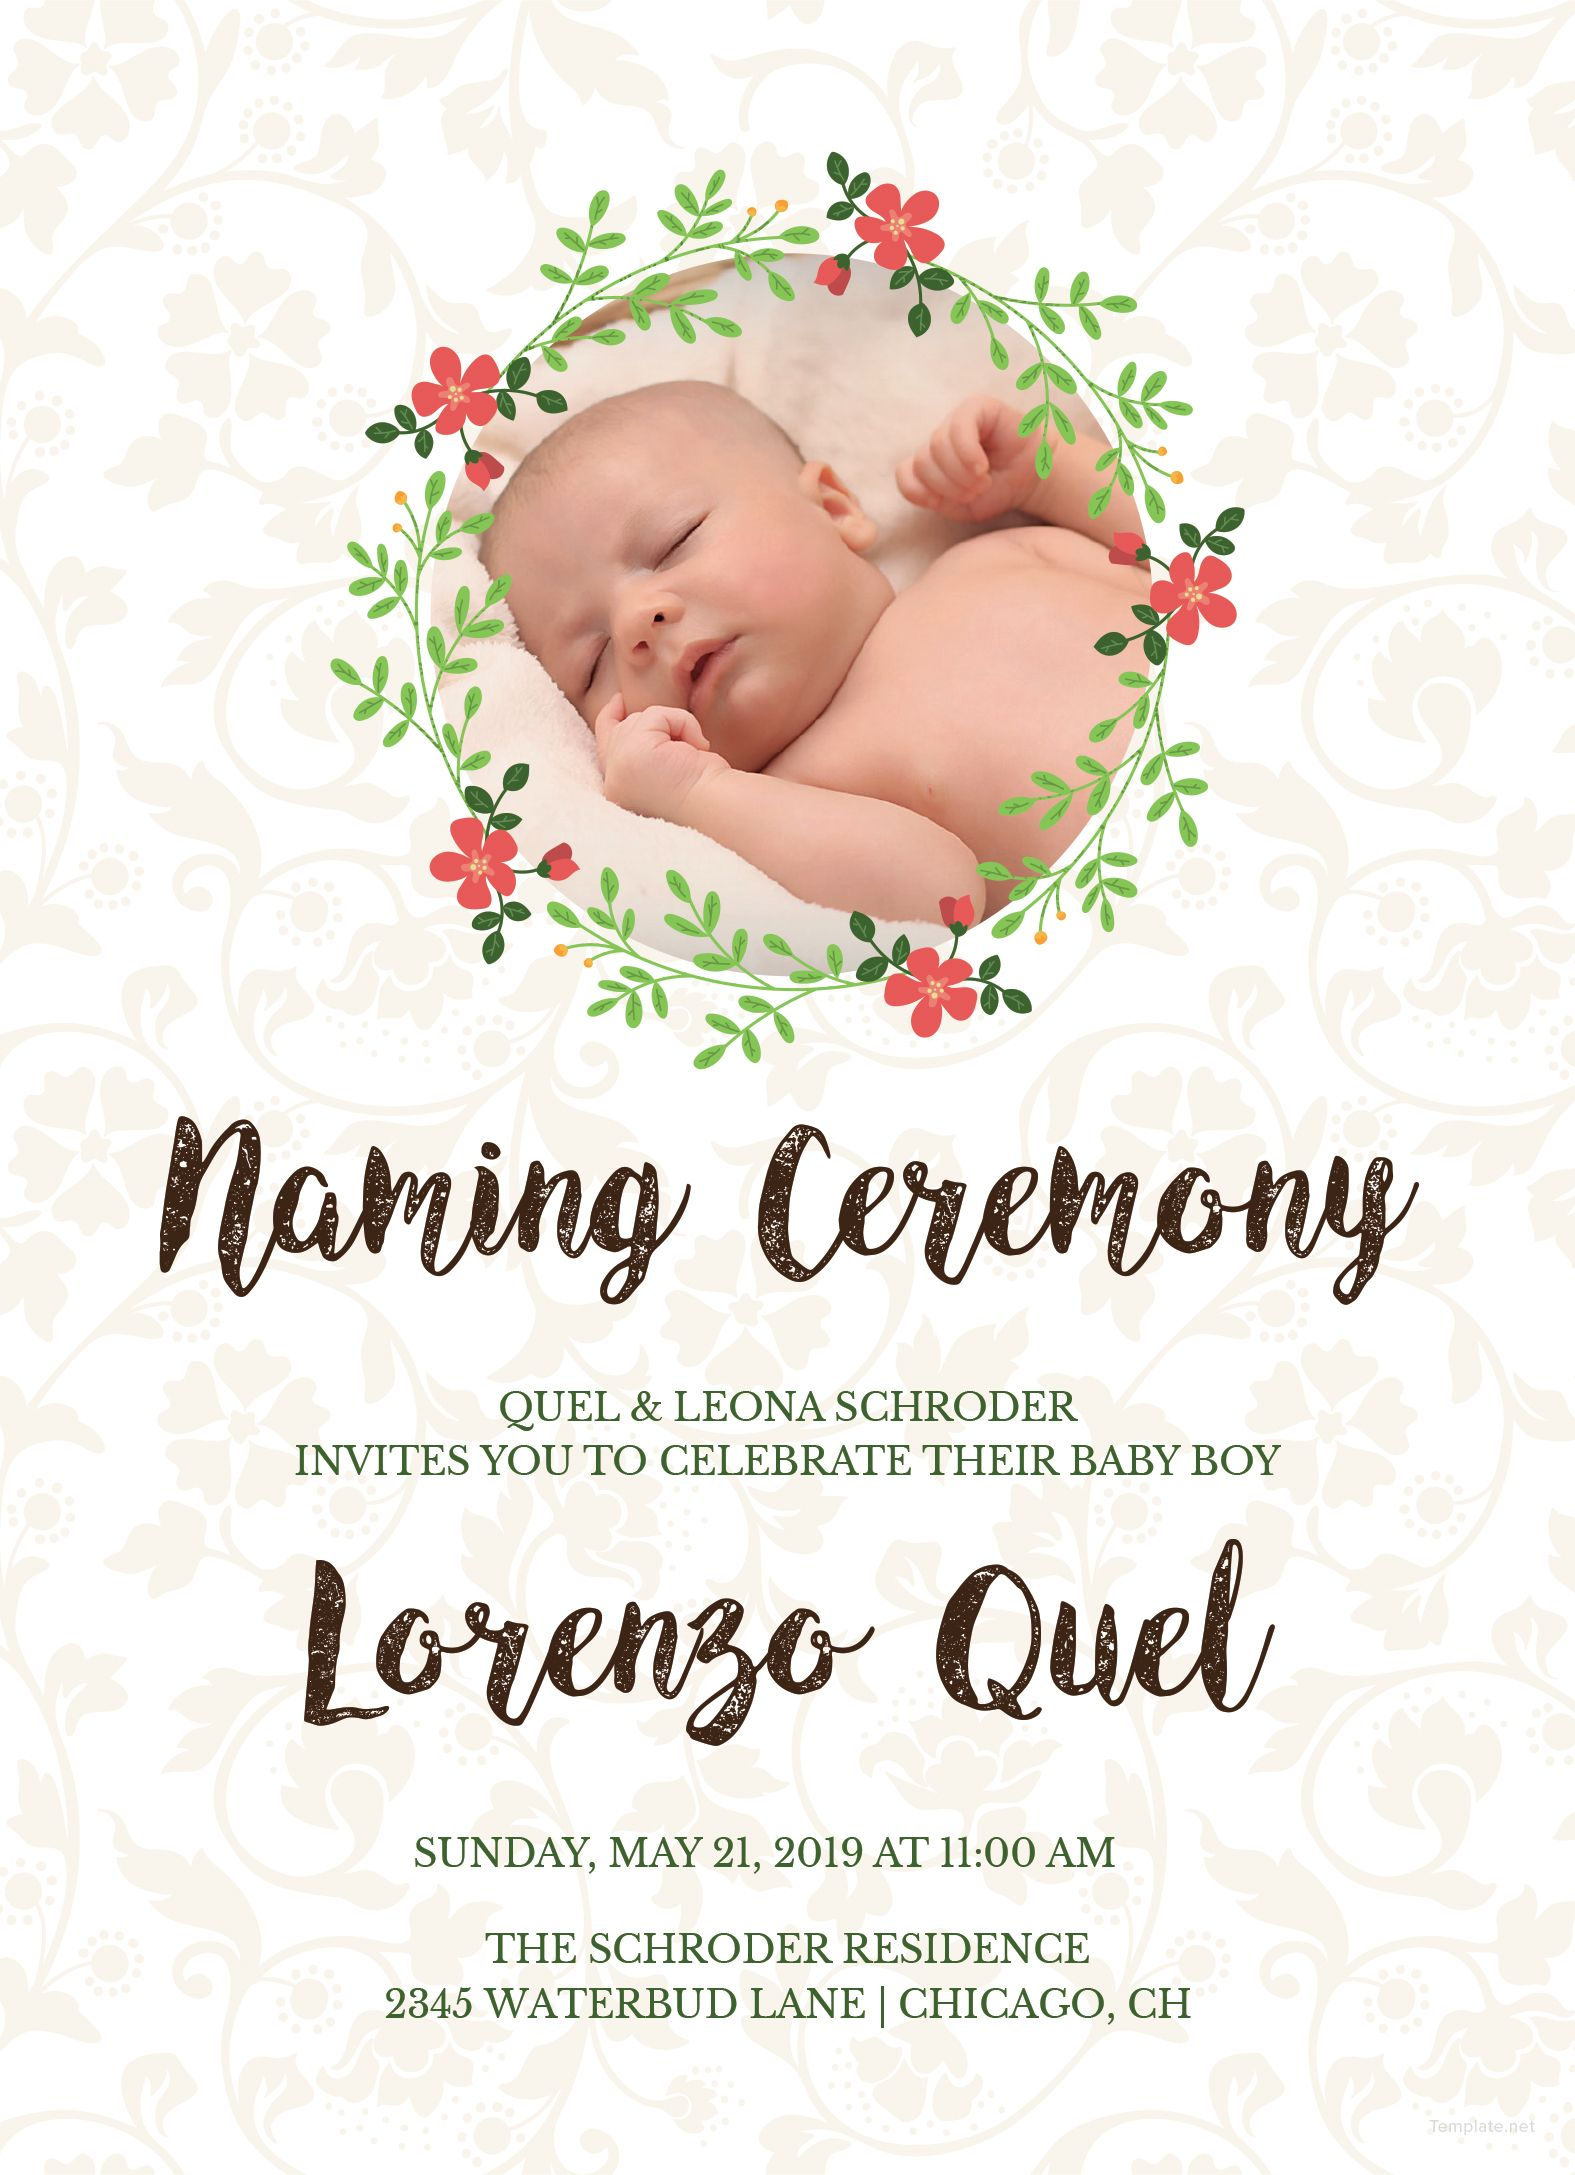 Free Creative Naming Invitation Naming Ceremony Invitation